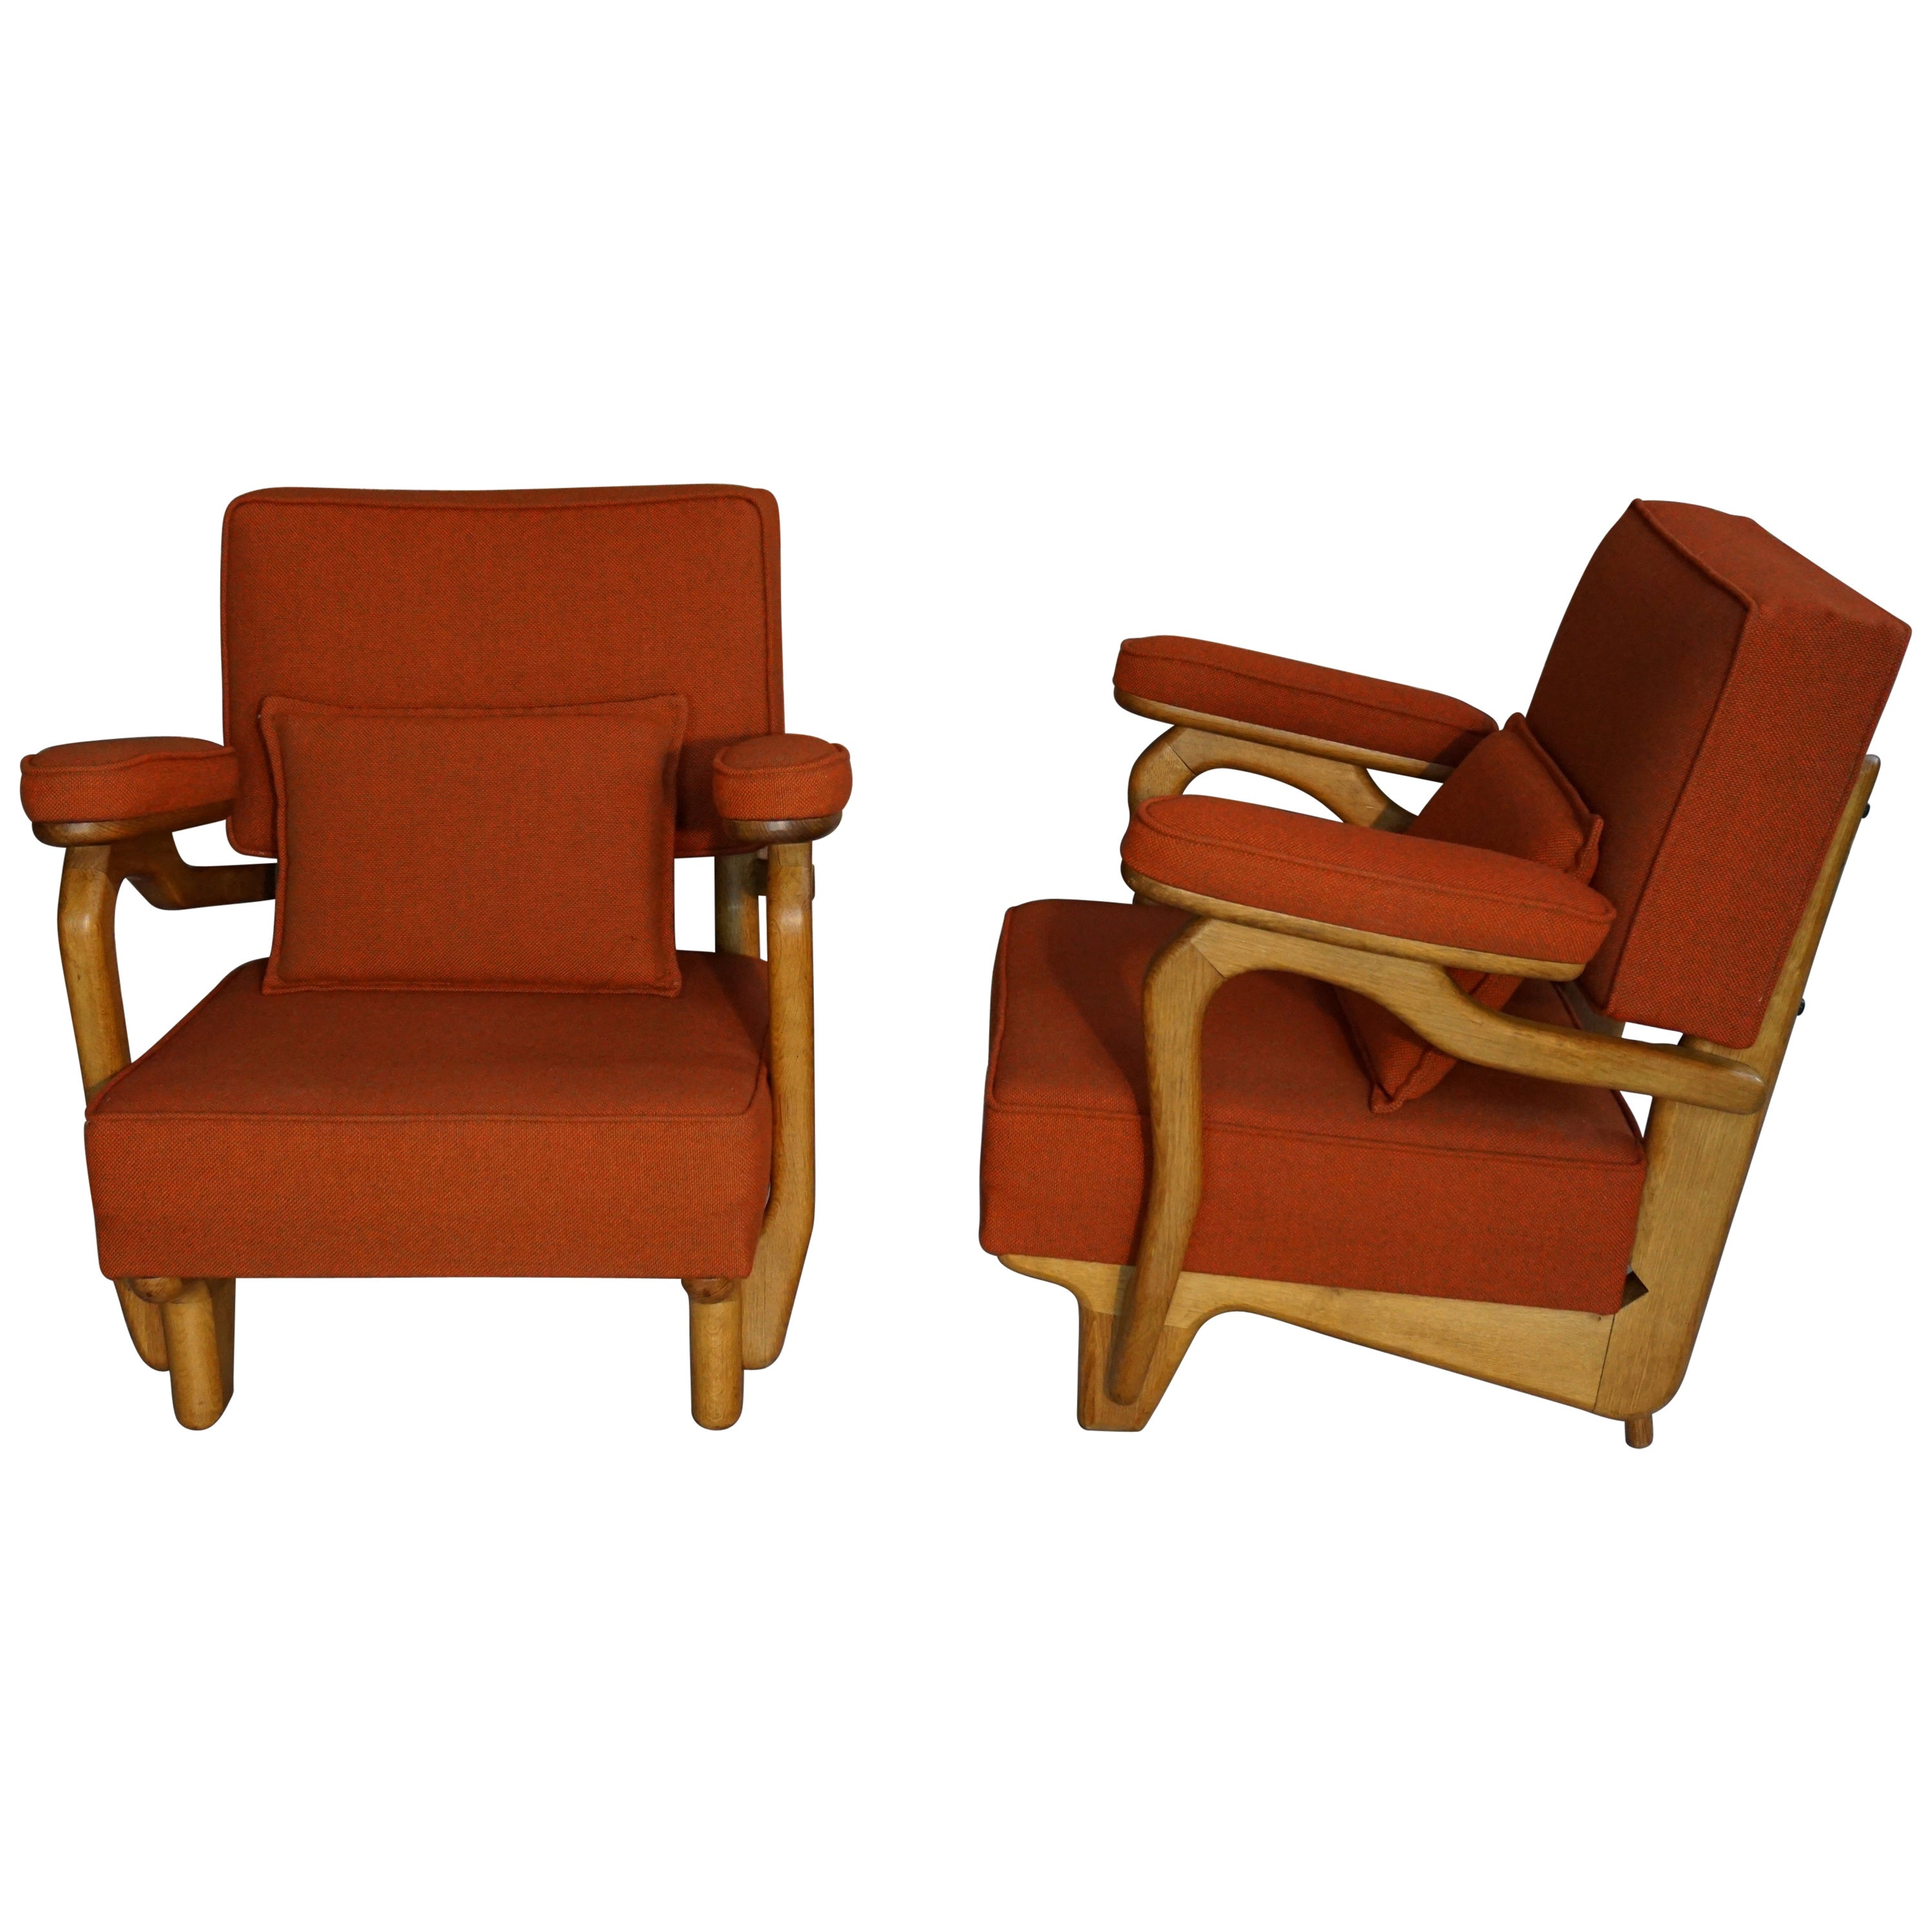 French 1950s-1960s Design by Guillerme & Chambron Oak Wooden Pair of Armchairs